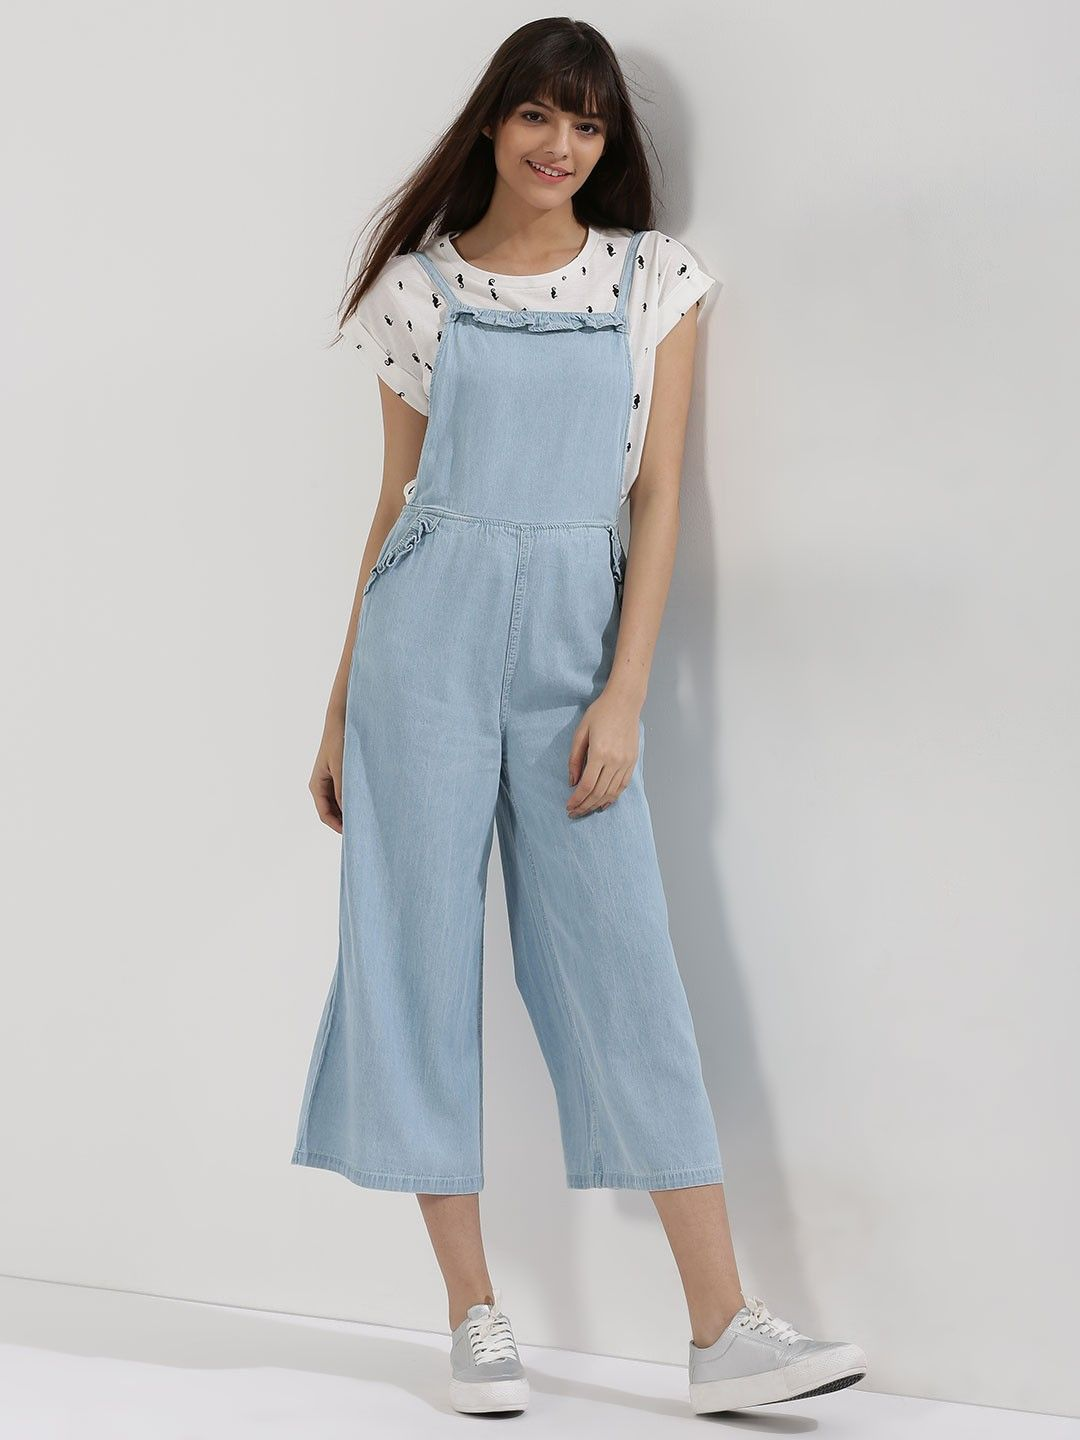 a2430feb03c4 Buy Cropped Wide Leg Dungarees For Women - Women s Blue Dungarees Online in  India